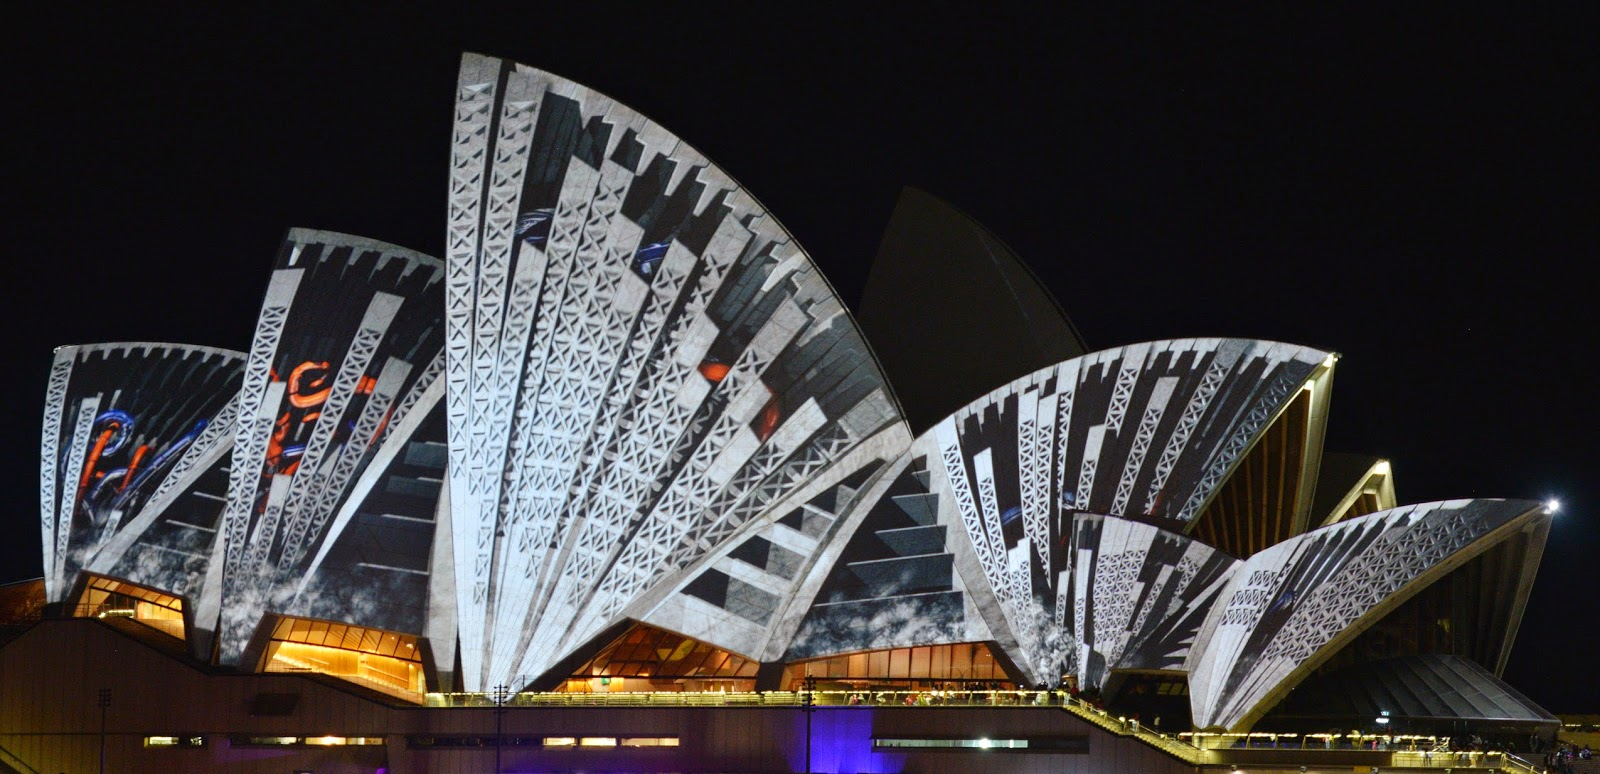 Sydney Vivid Light Festival: HD Pictures